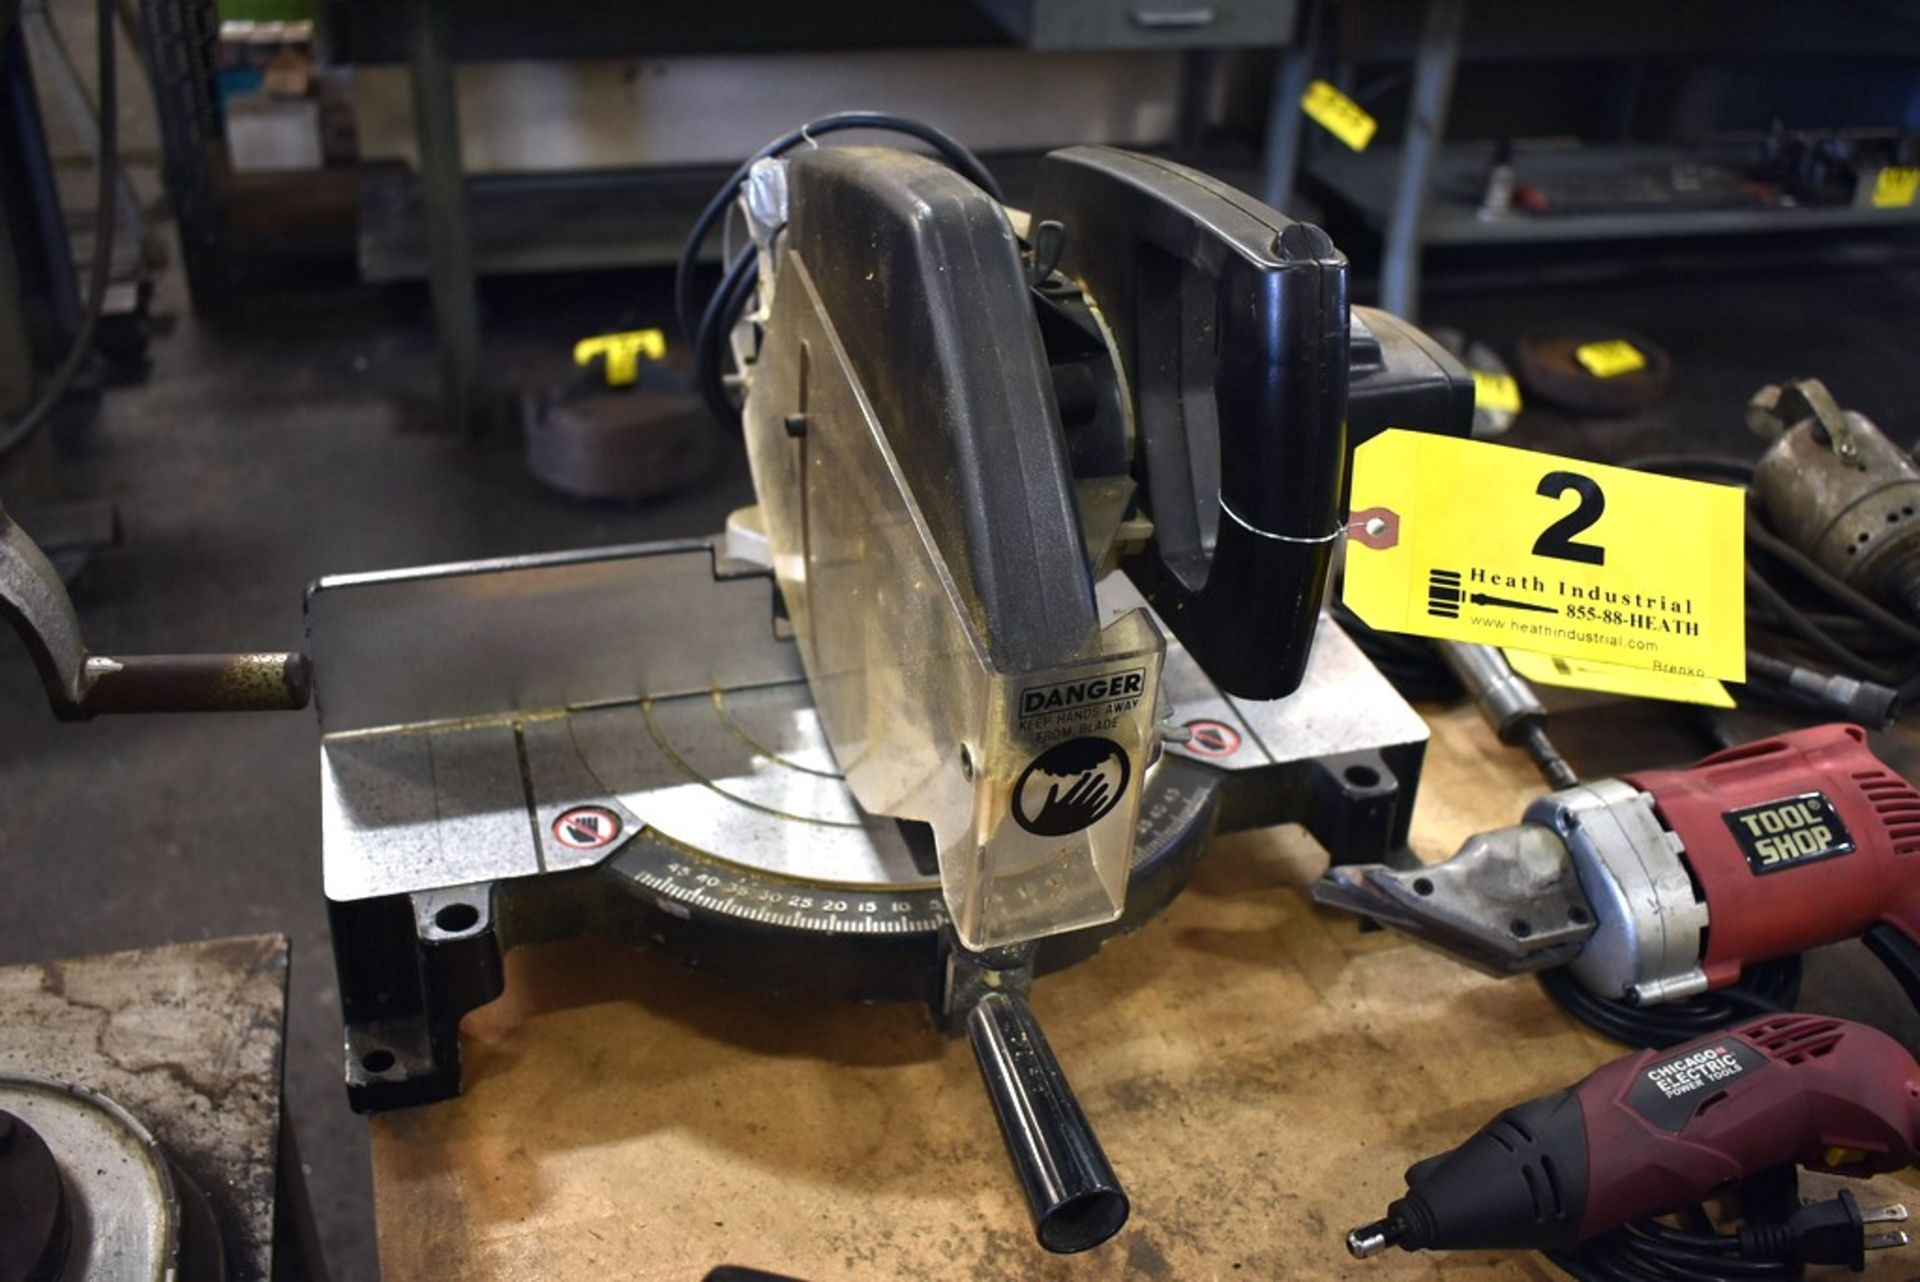 Lot 2 - BLACK AND DECKER 1701 POWER MITER SAW